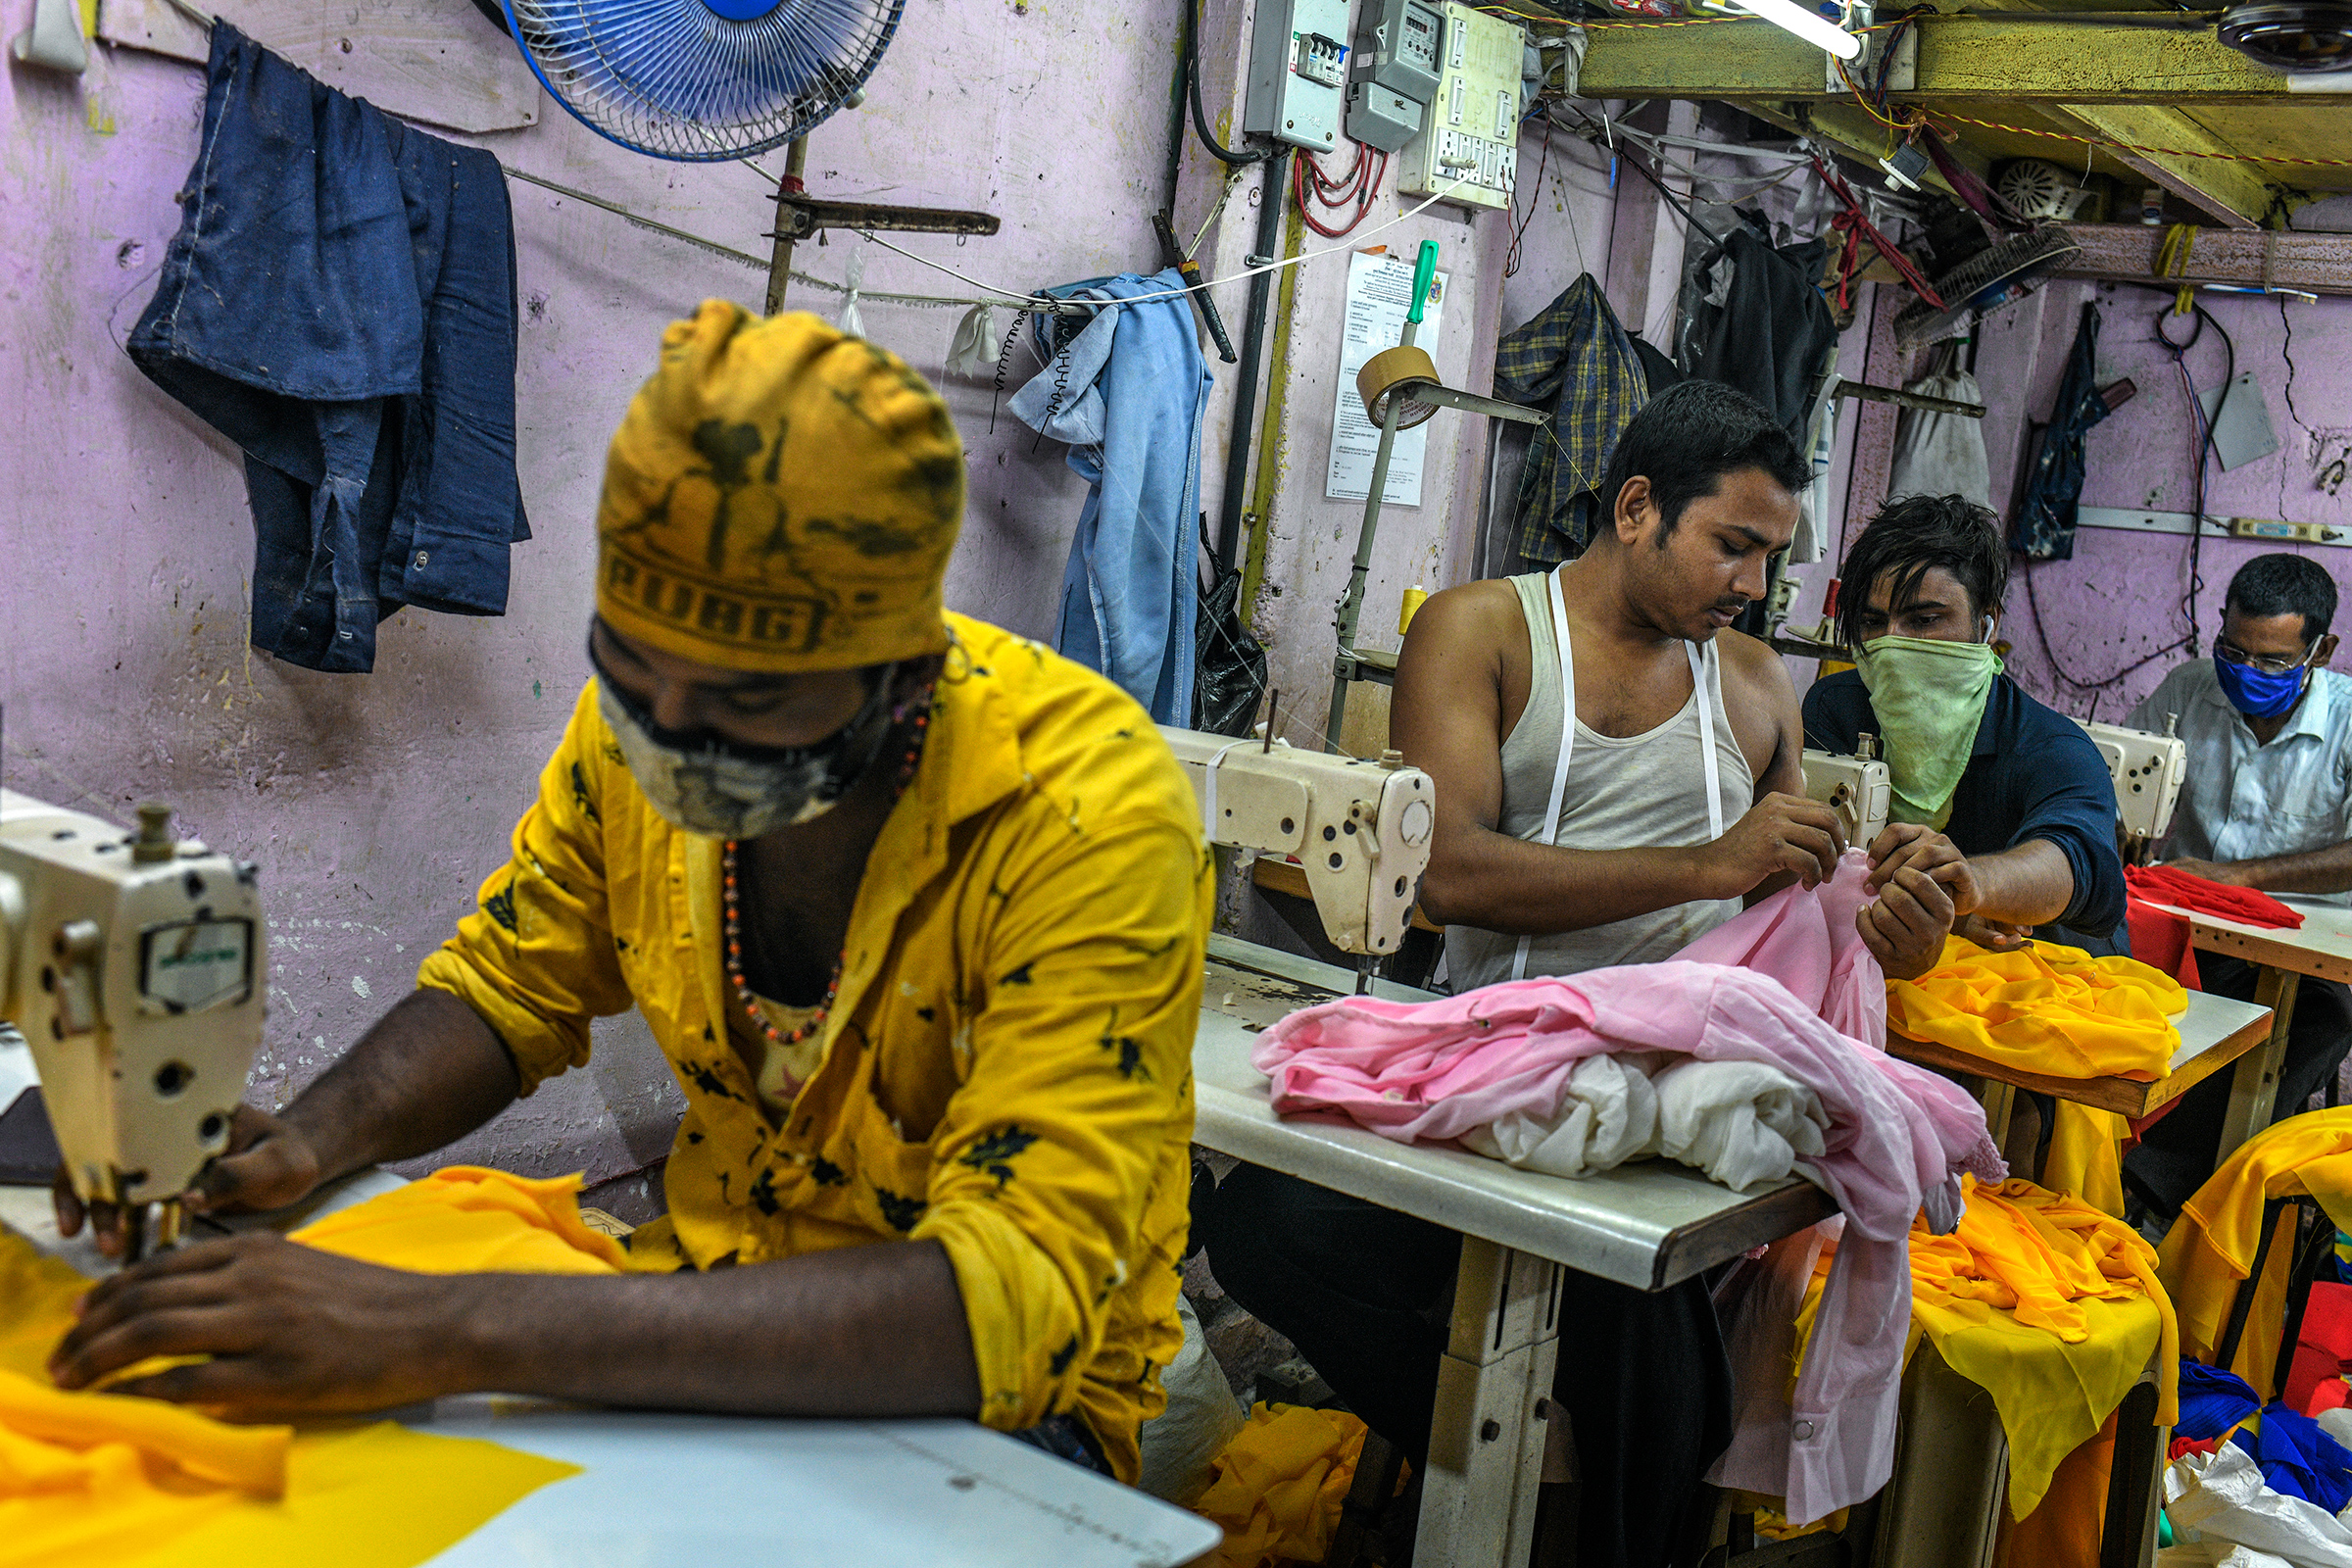 My family was worried about the disease and didn't want me to return to the city, but I had to come back to work,  said Ishrar Ali, who stitches women's tops in a garment workshop in Dharavi.